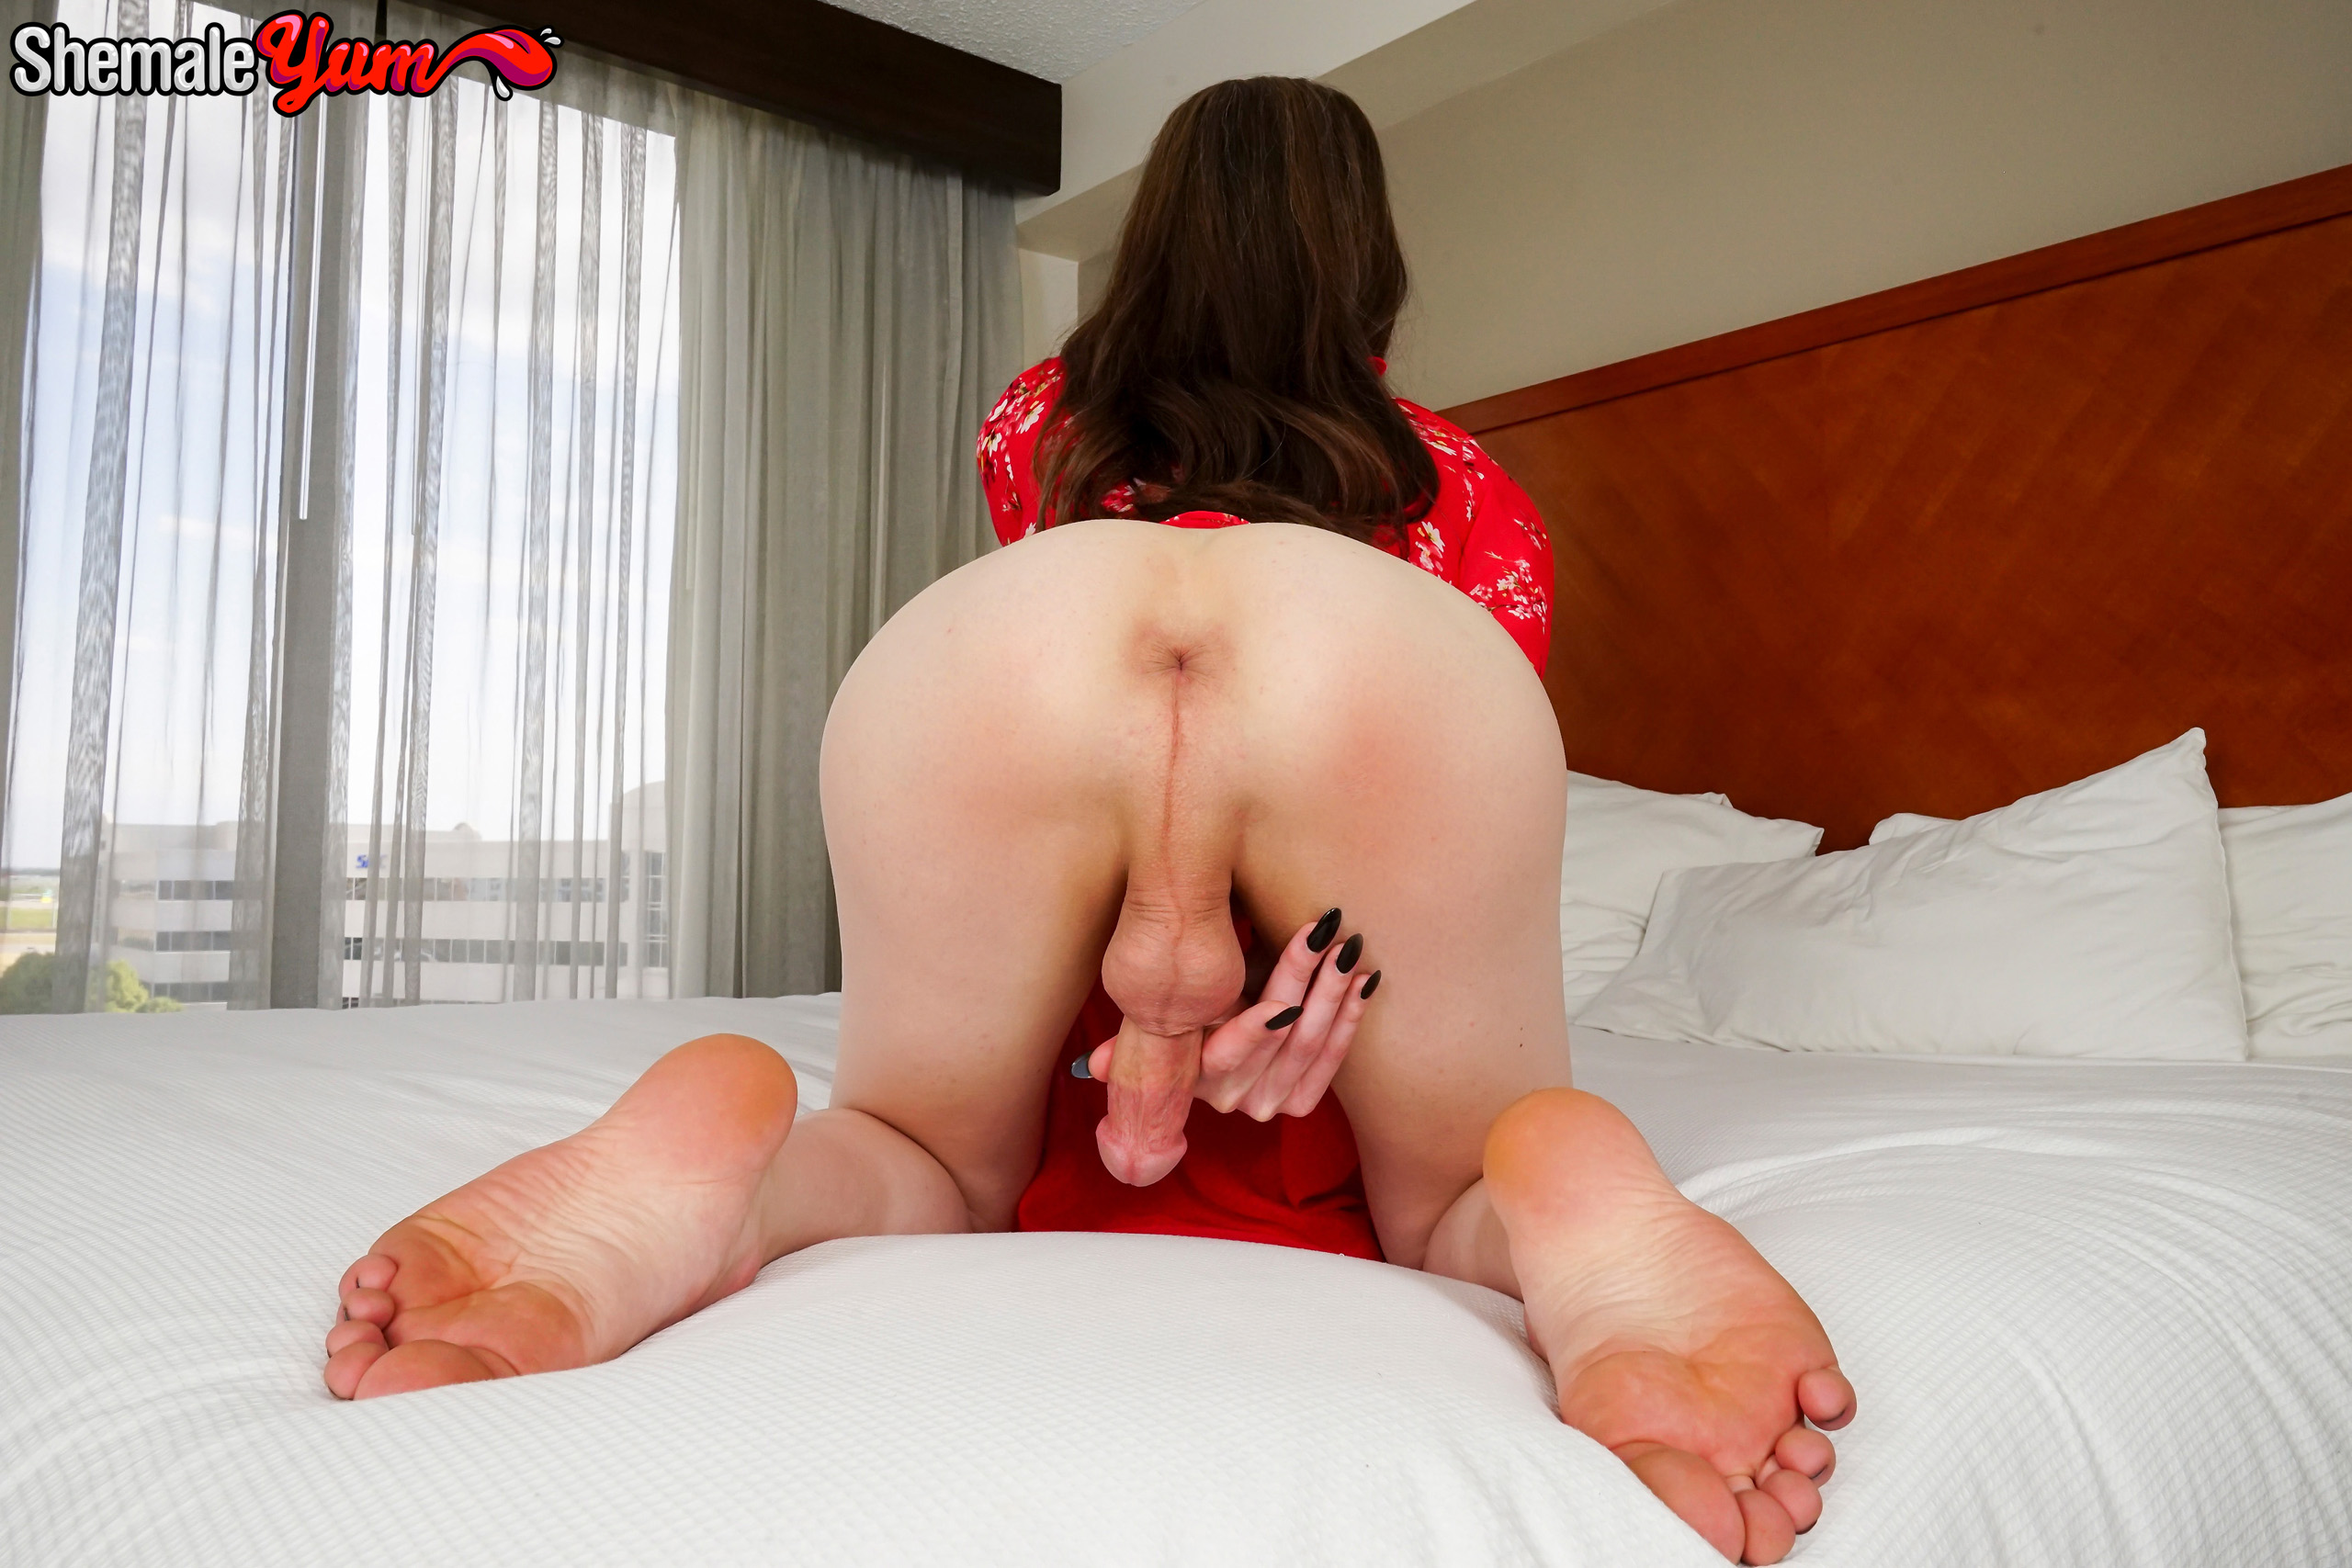 Shemale and girl porn